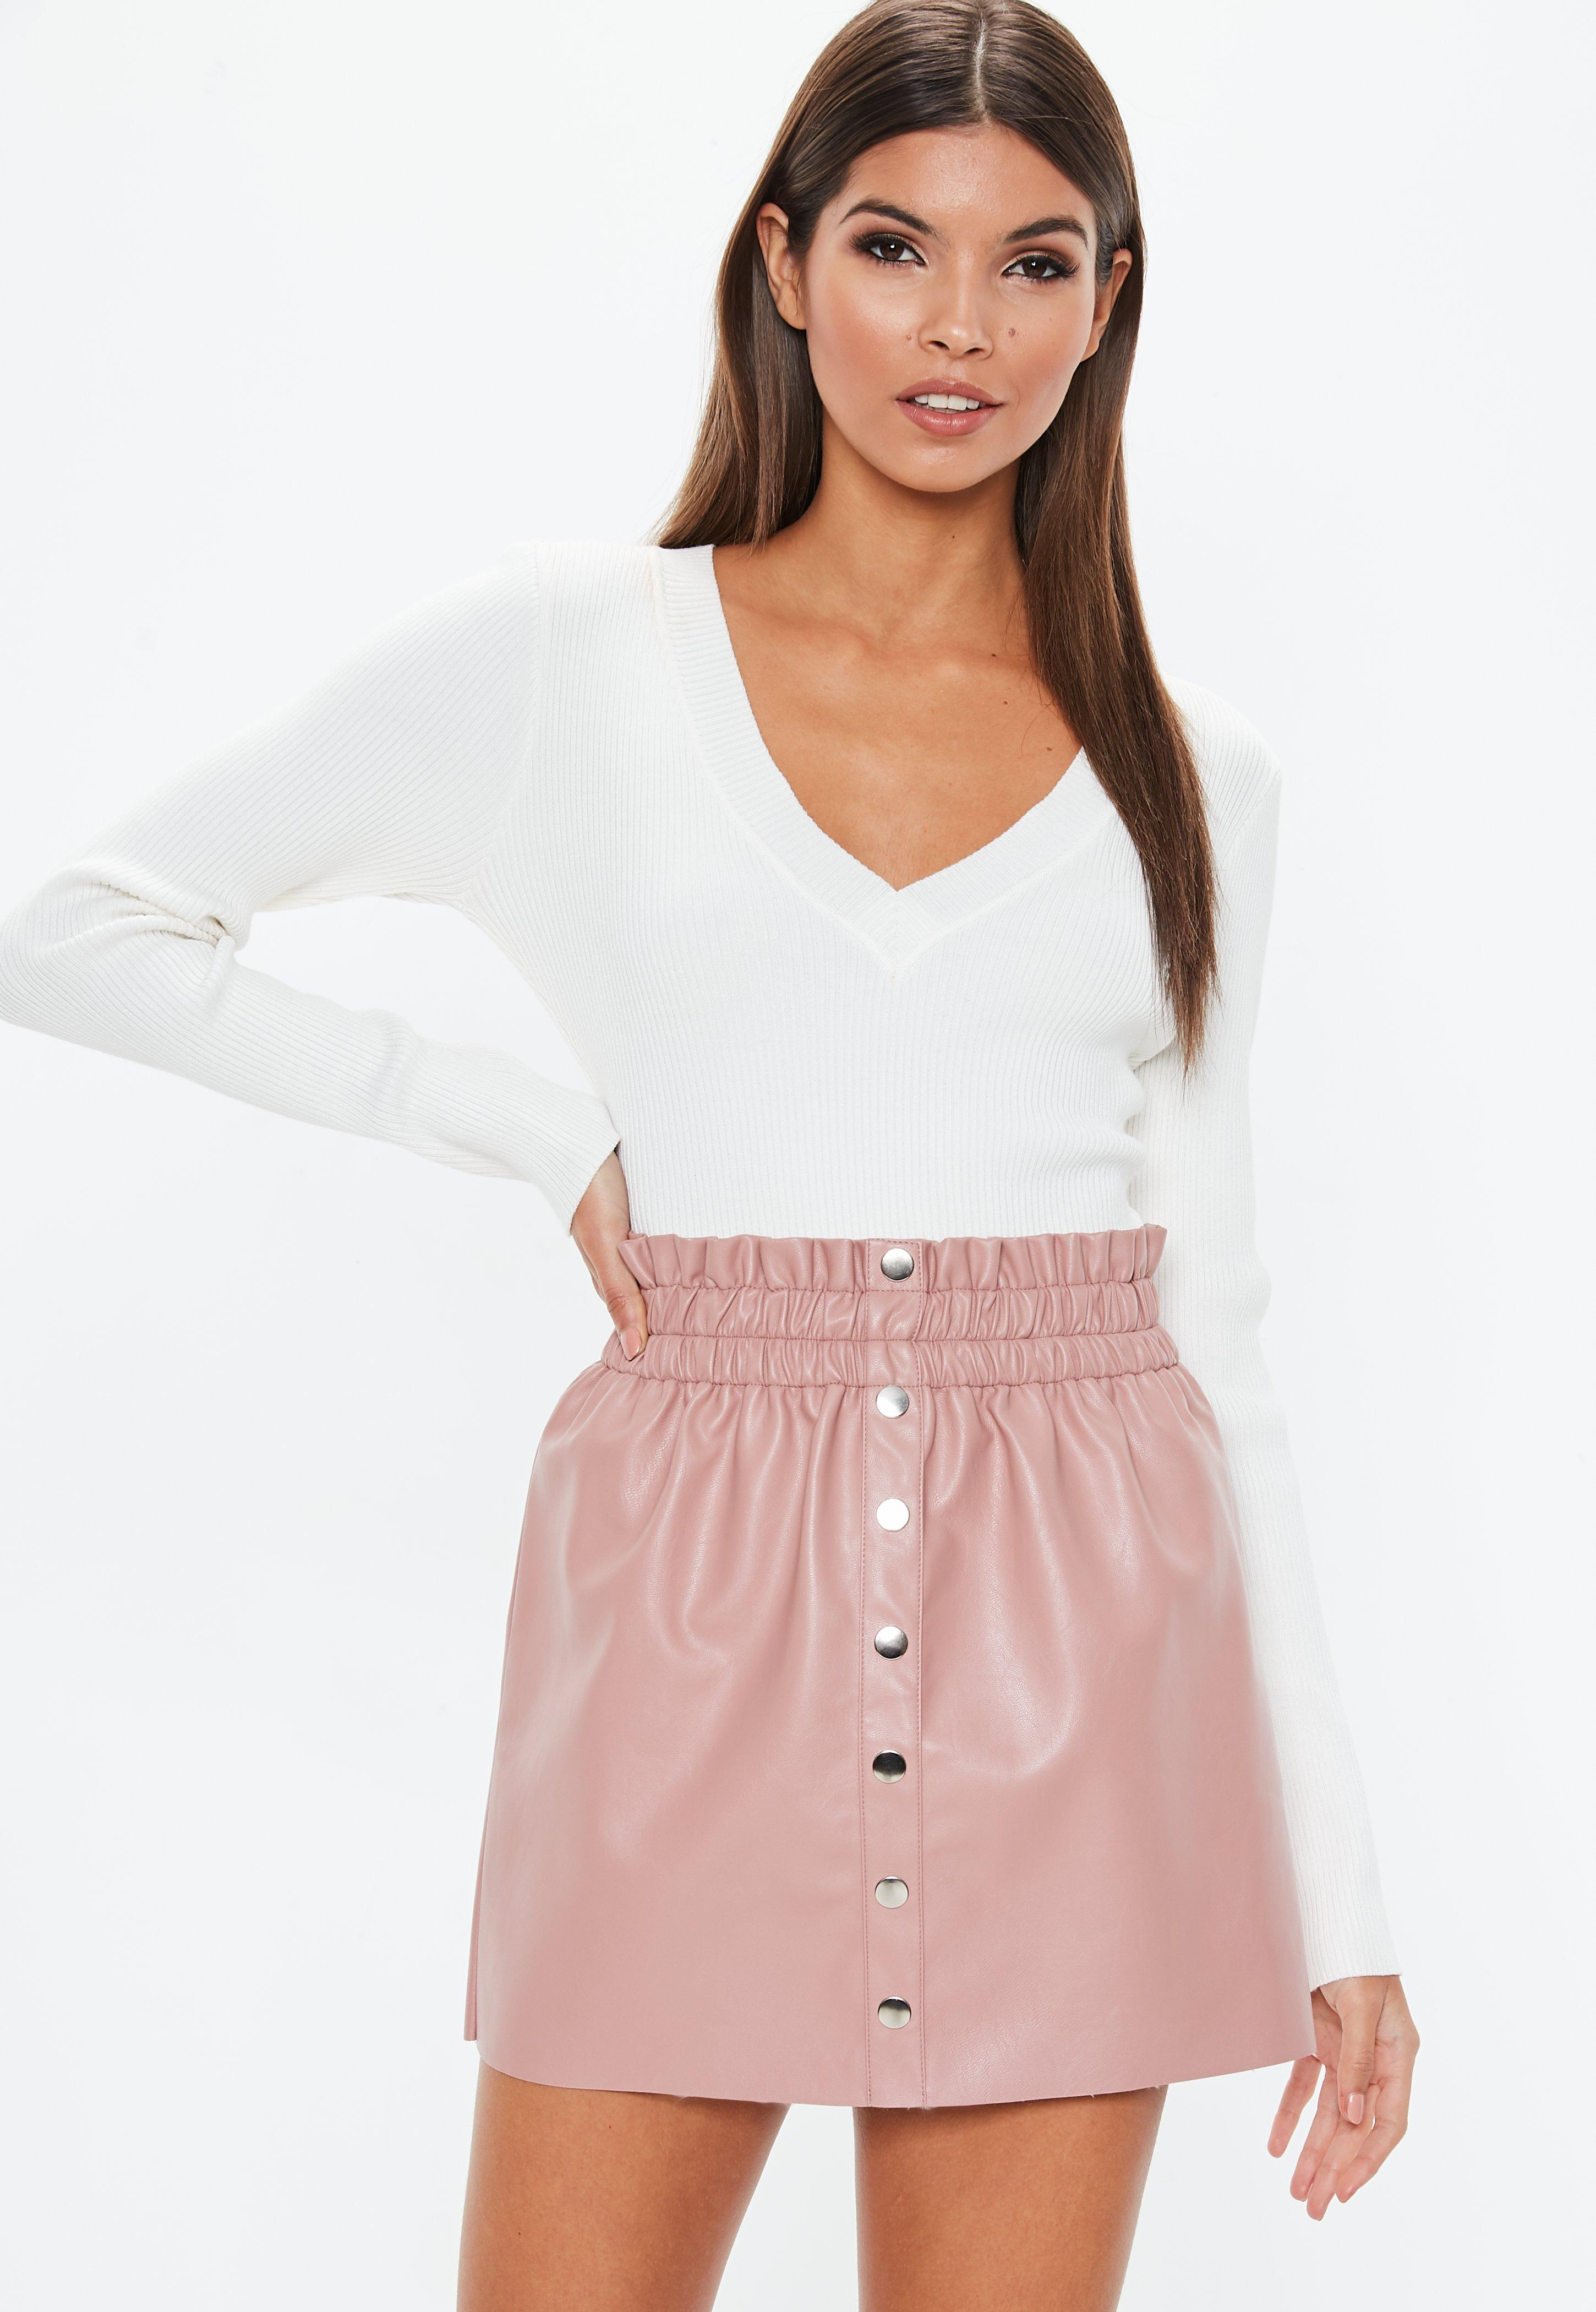 c20123ec4f77 Nude Skirts | Beige & Camel Skirts - Missguided